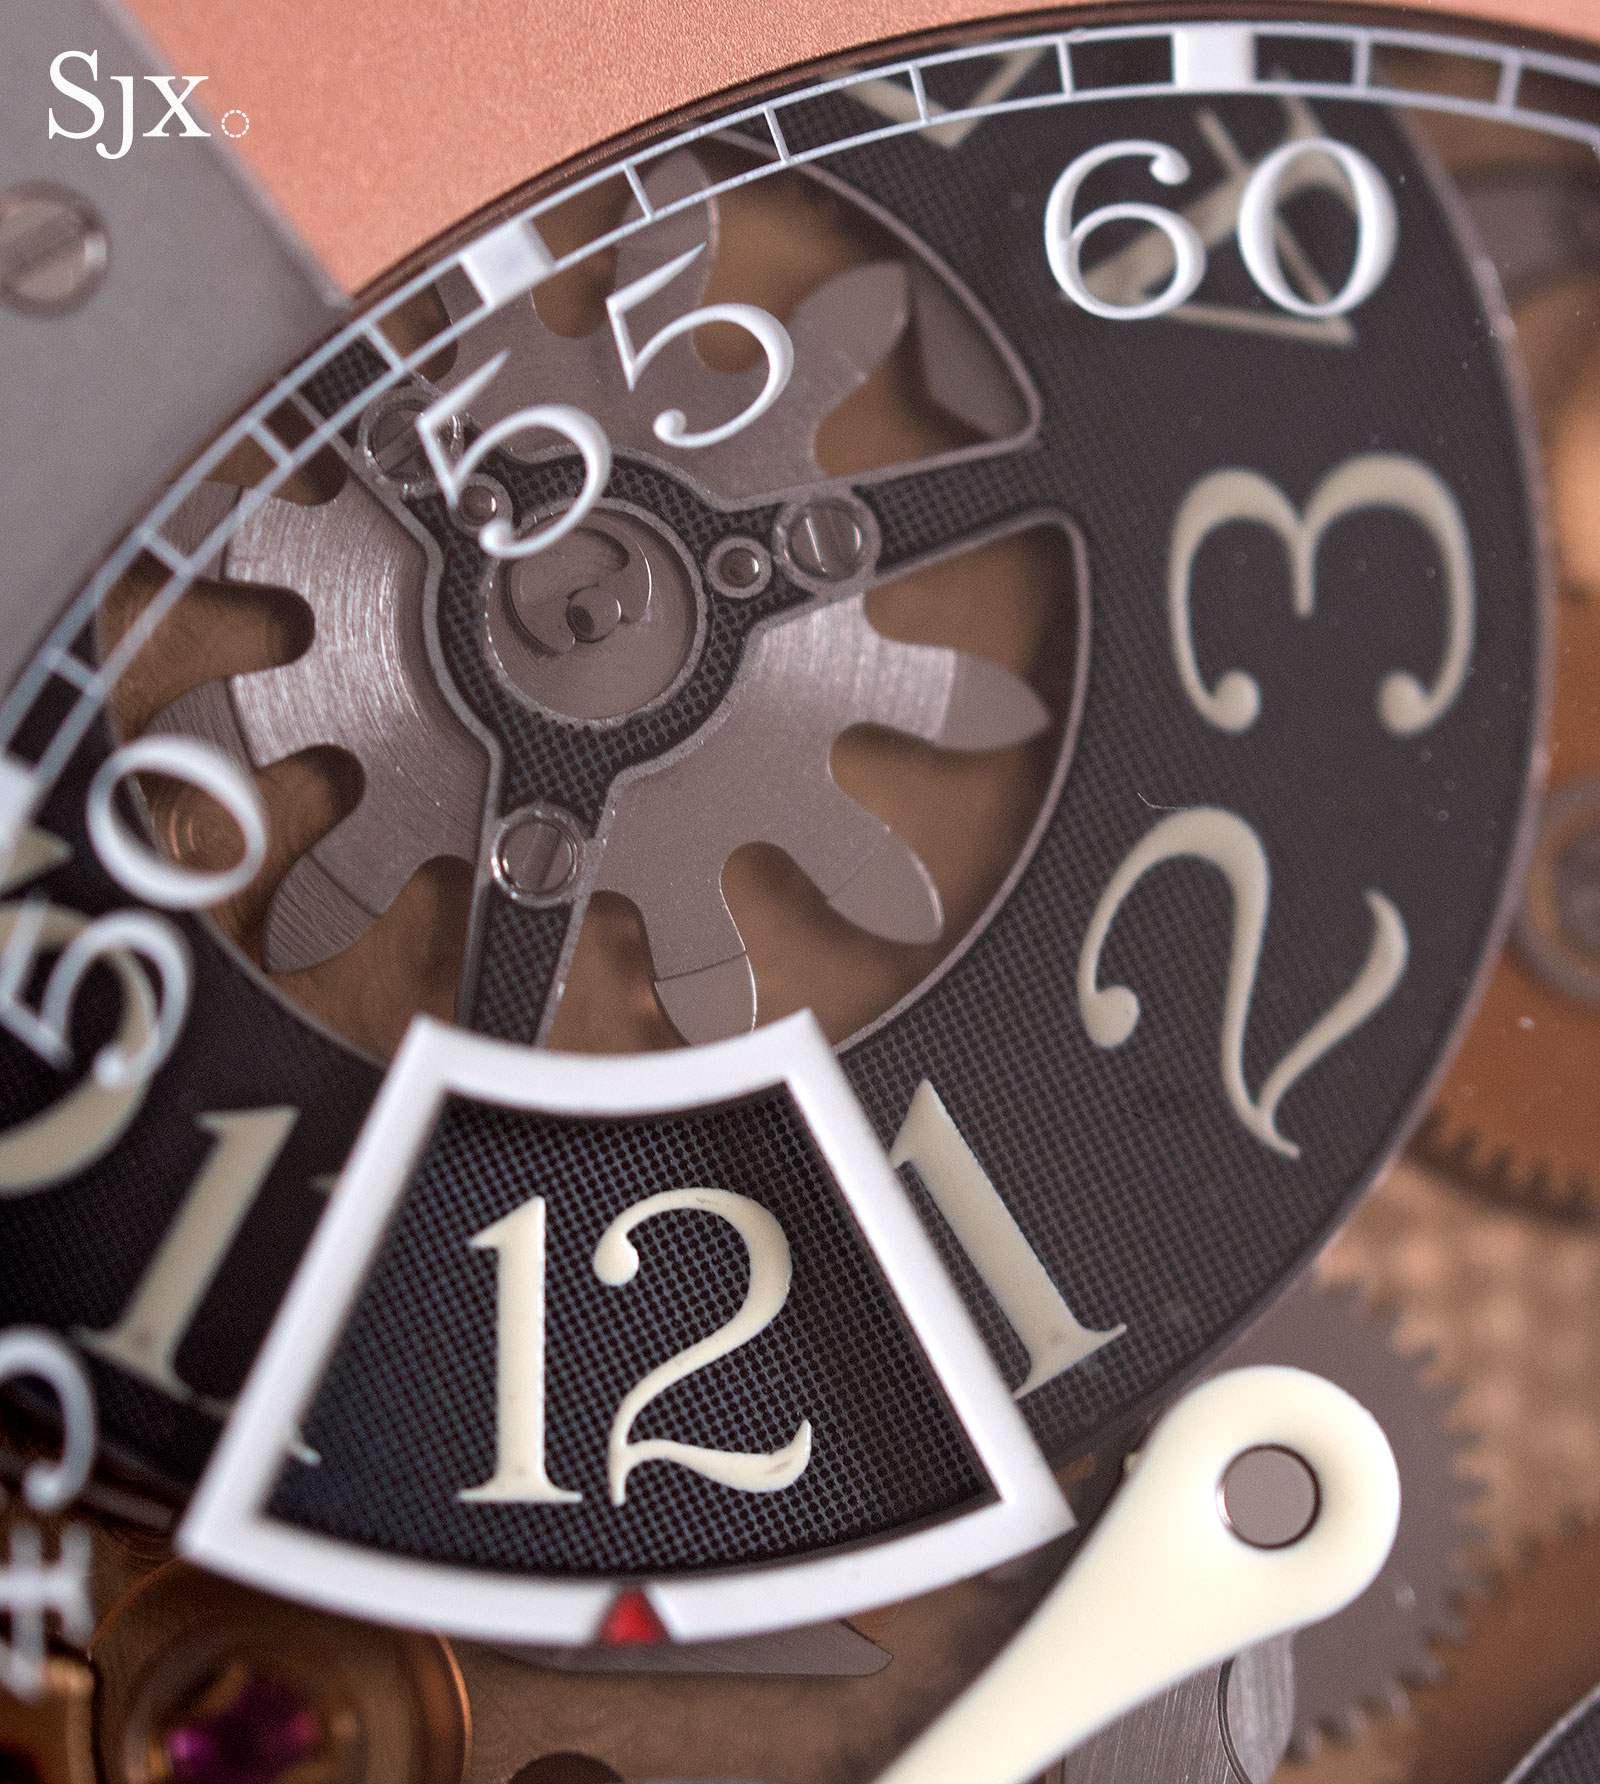 FP Journe Vagabondage III red gold 7